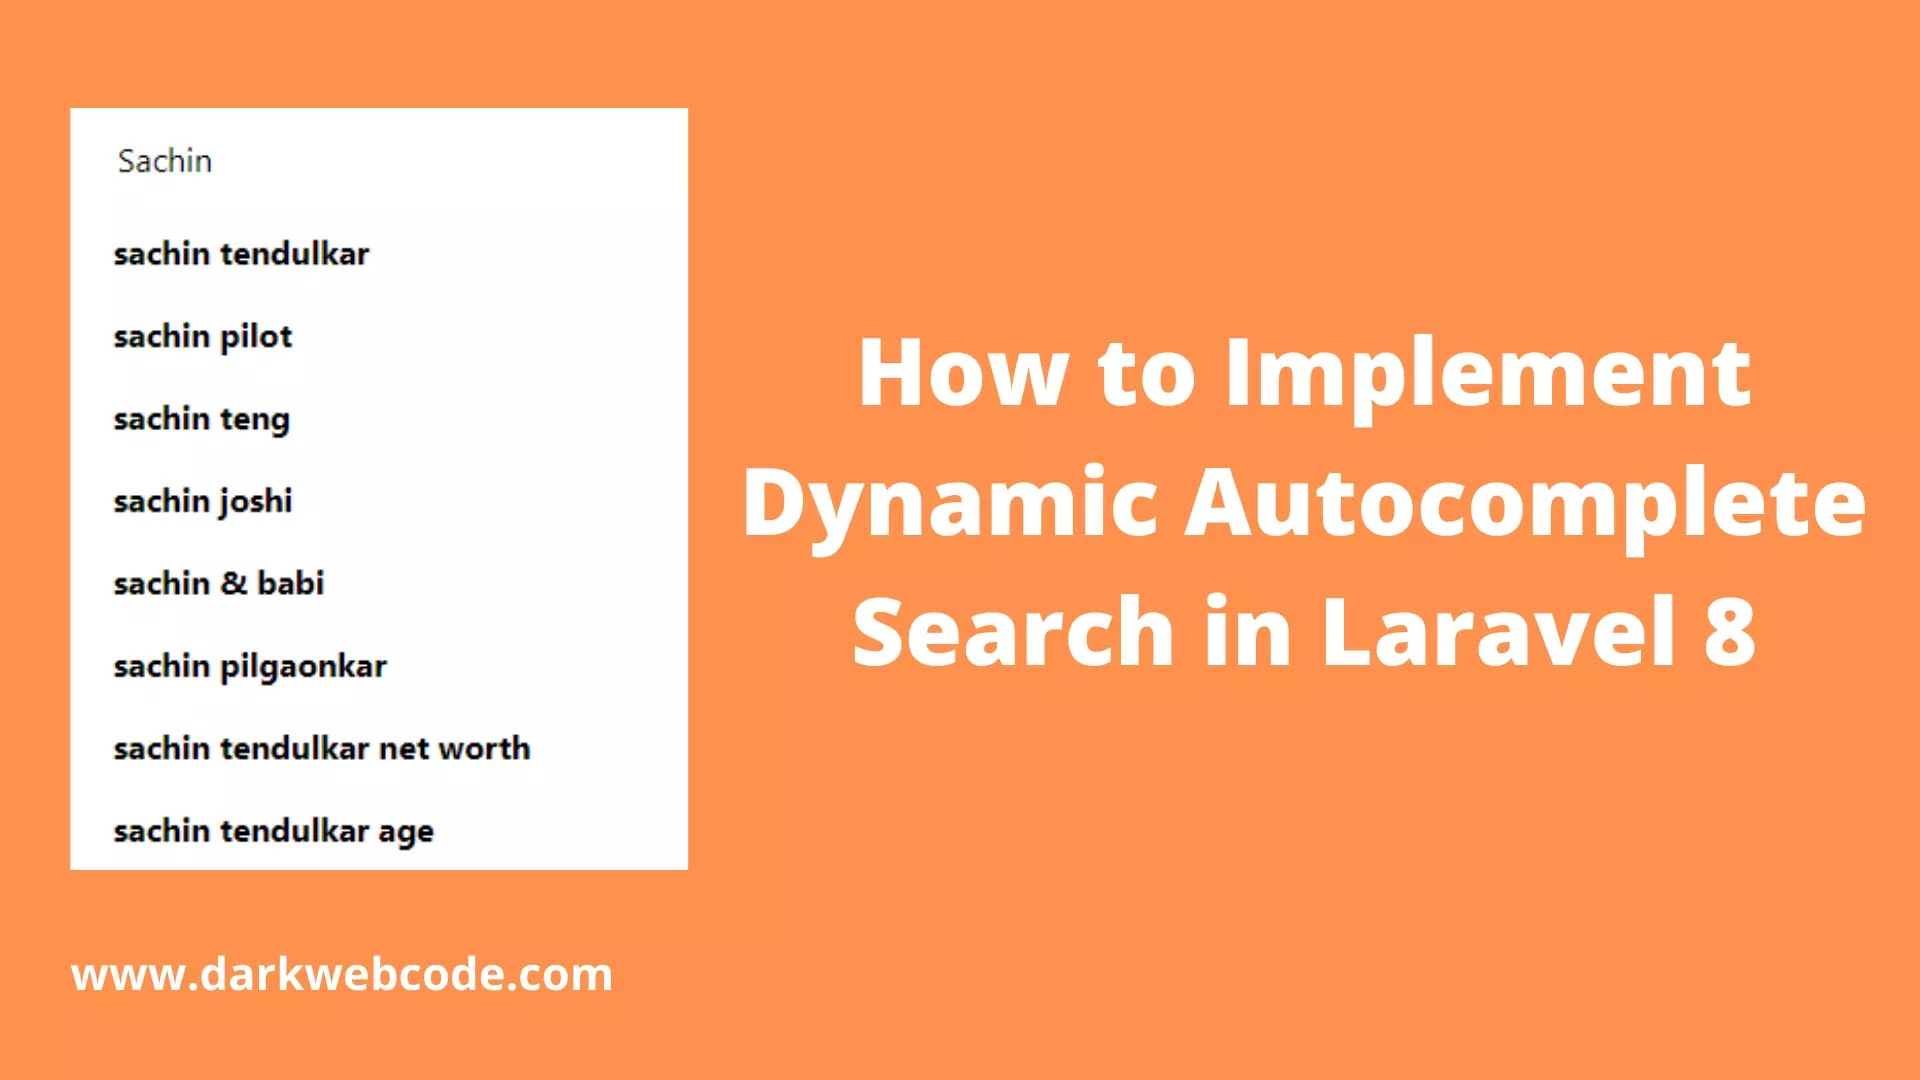 How to Implement Dynamic Autocomplete Search in Laravel 8